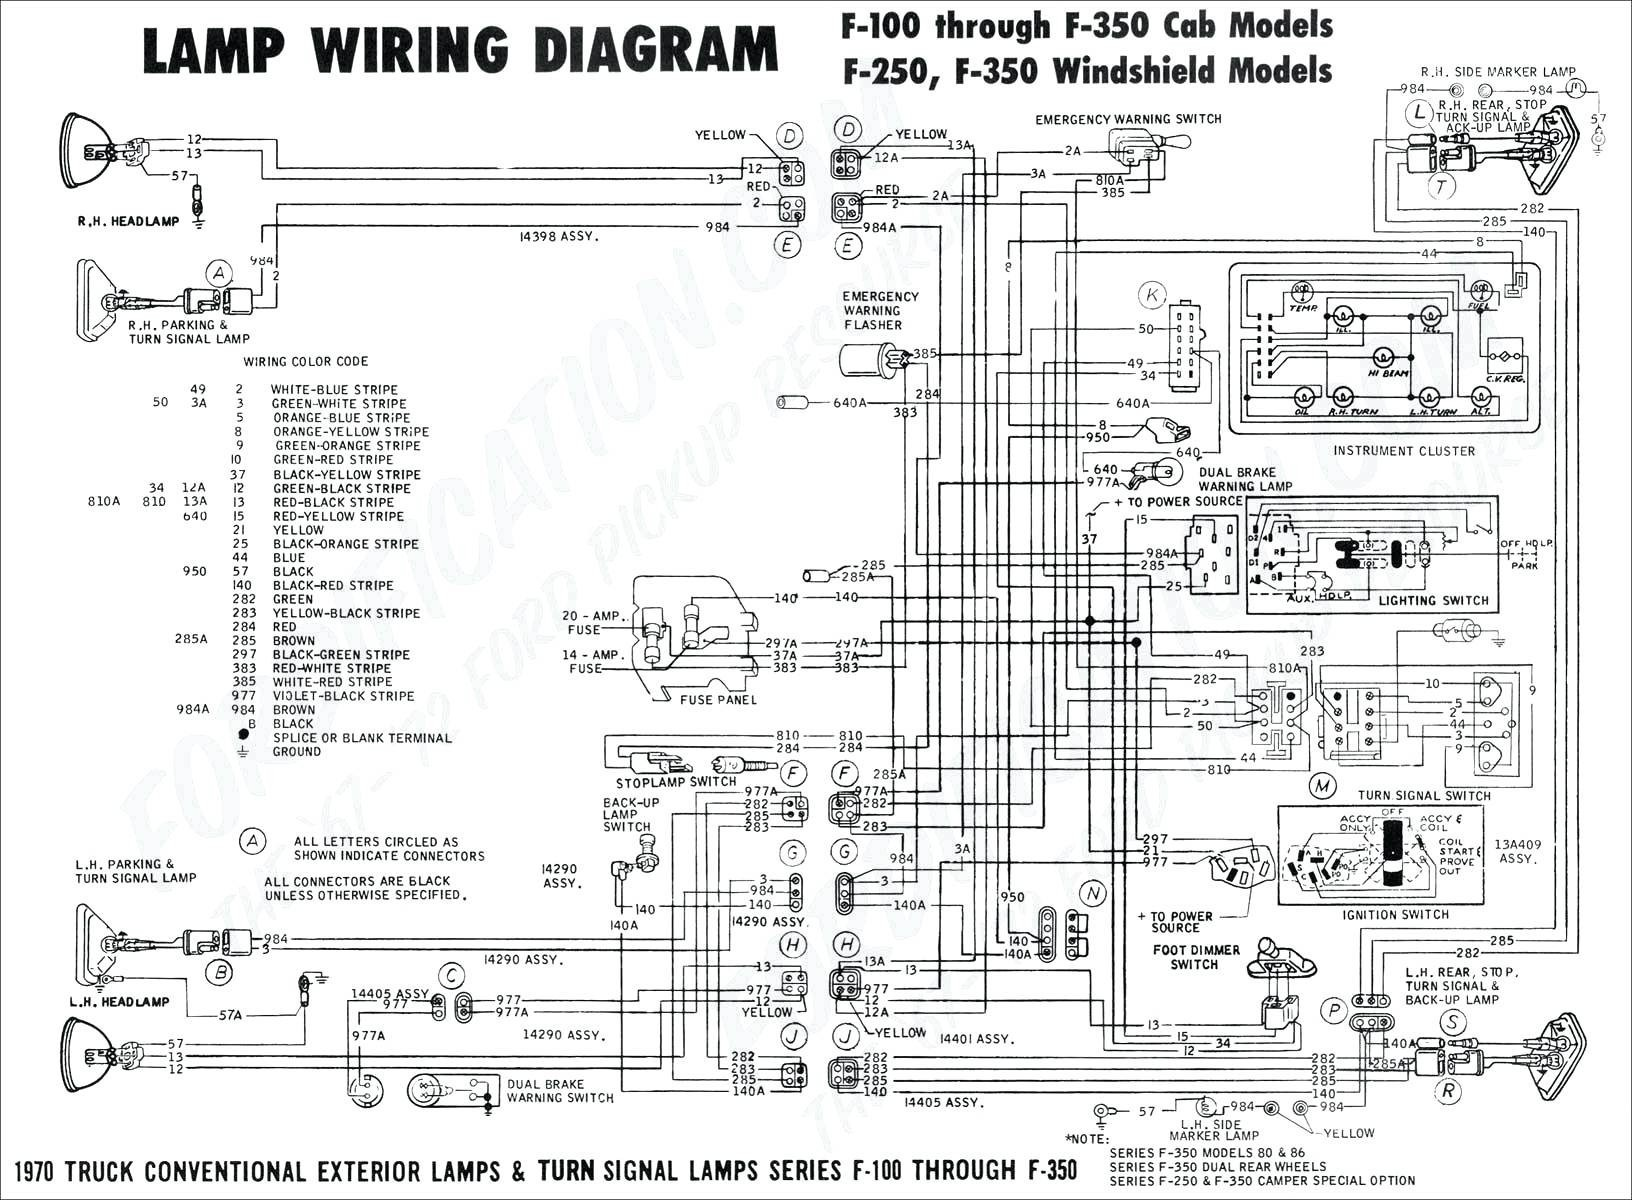 1995 ford F150 Parts Diagram 1997 ford F100 Wiring Wiring Diagram • Of 1995 ford F150 Parts Diagram